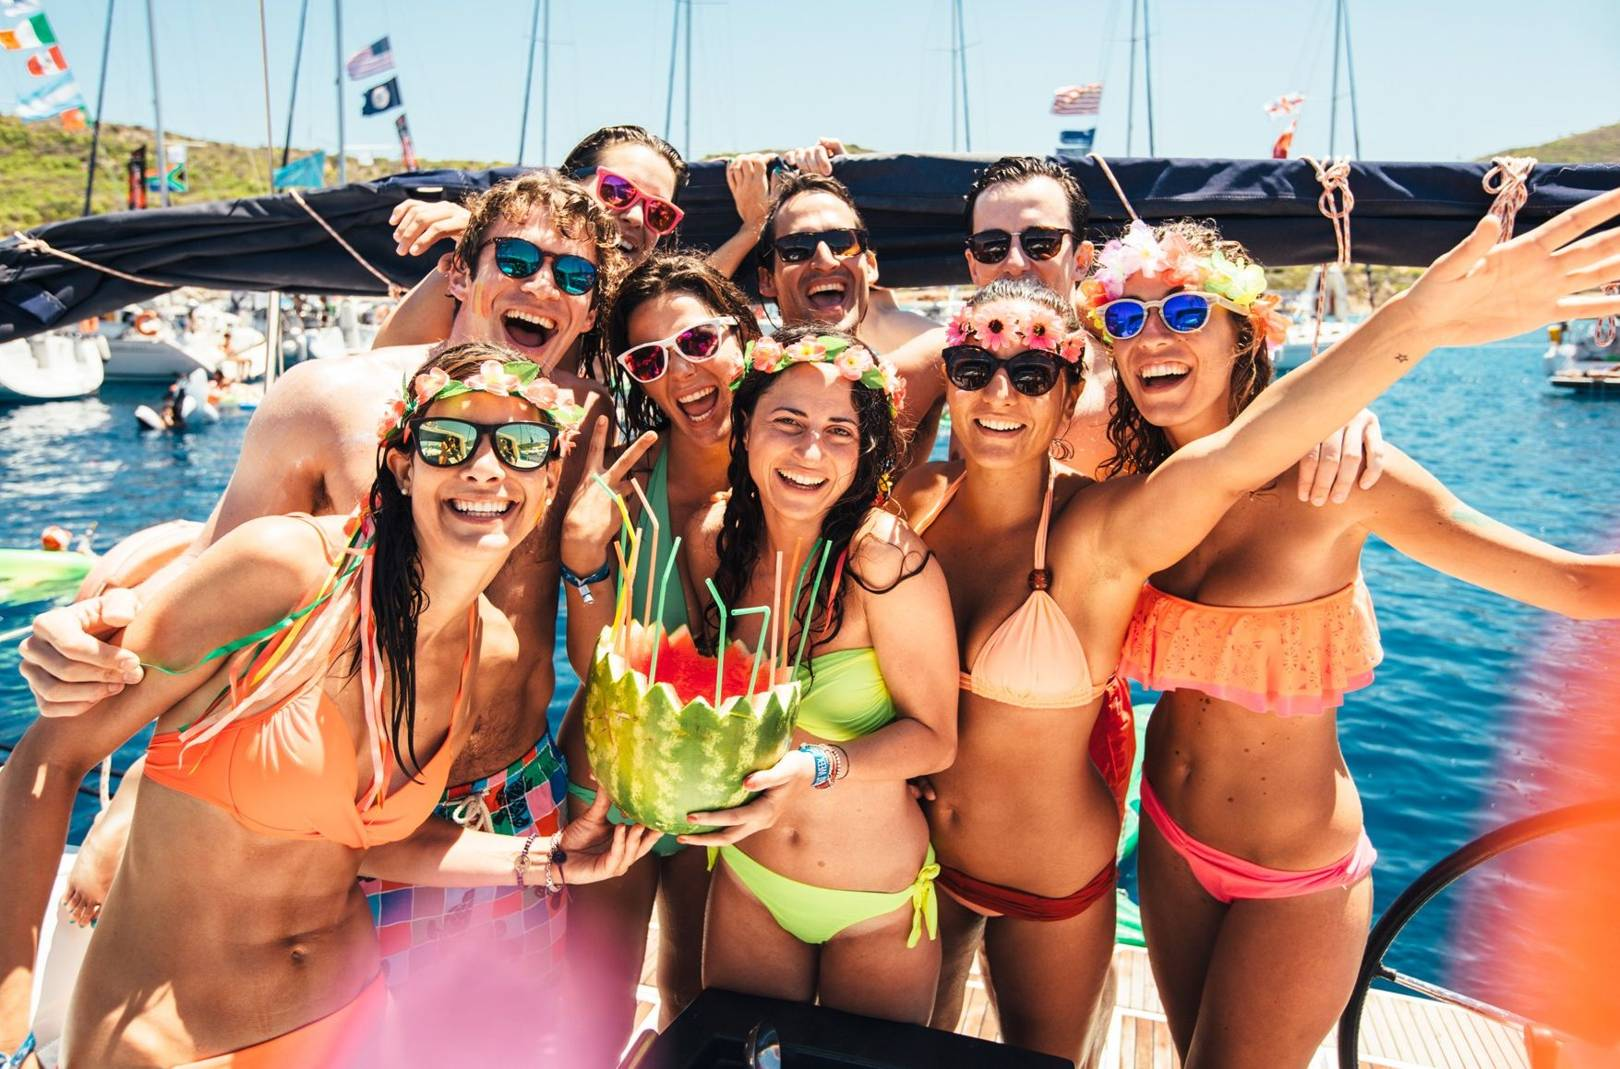 Hot babes party hard on boat during spring break